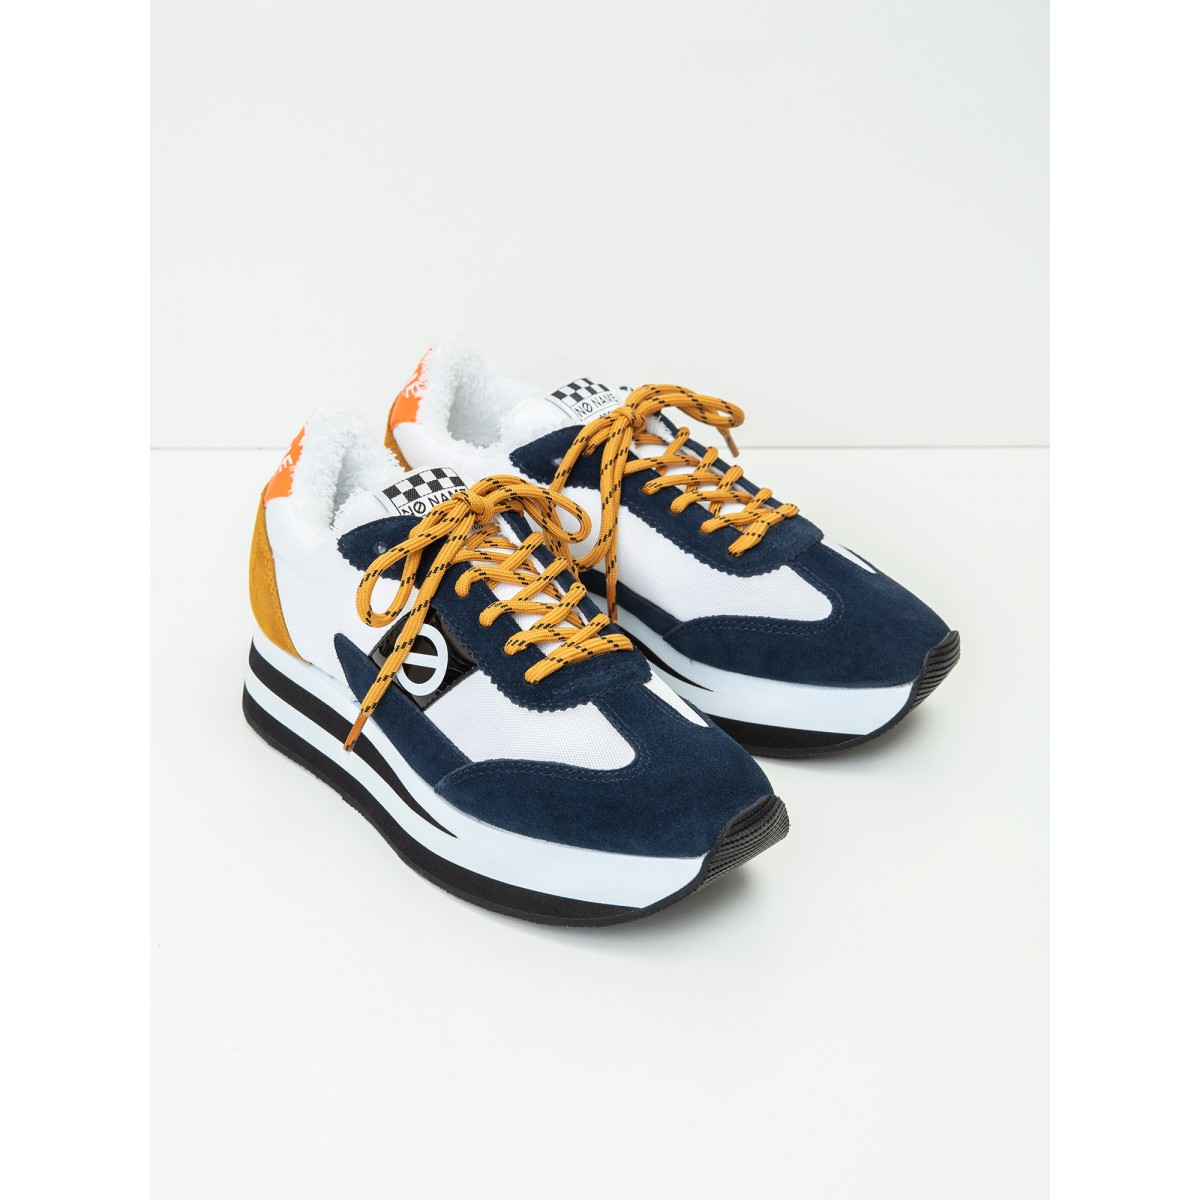 No Name Flex Jogger - Nylon/Suede - White/Navy